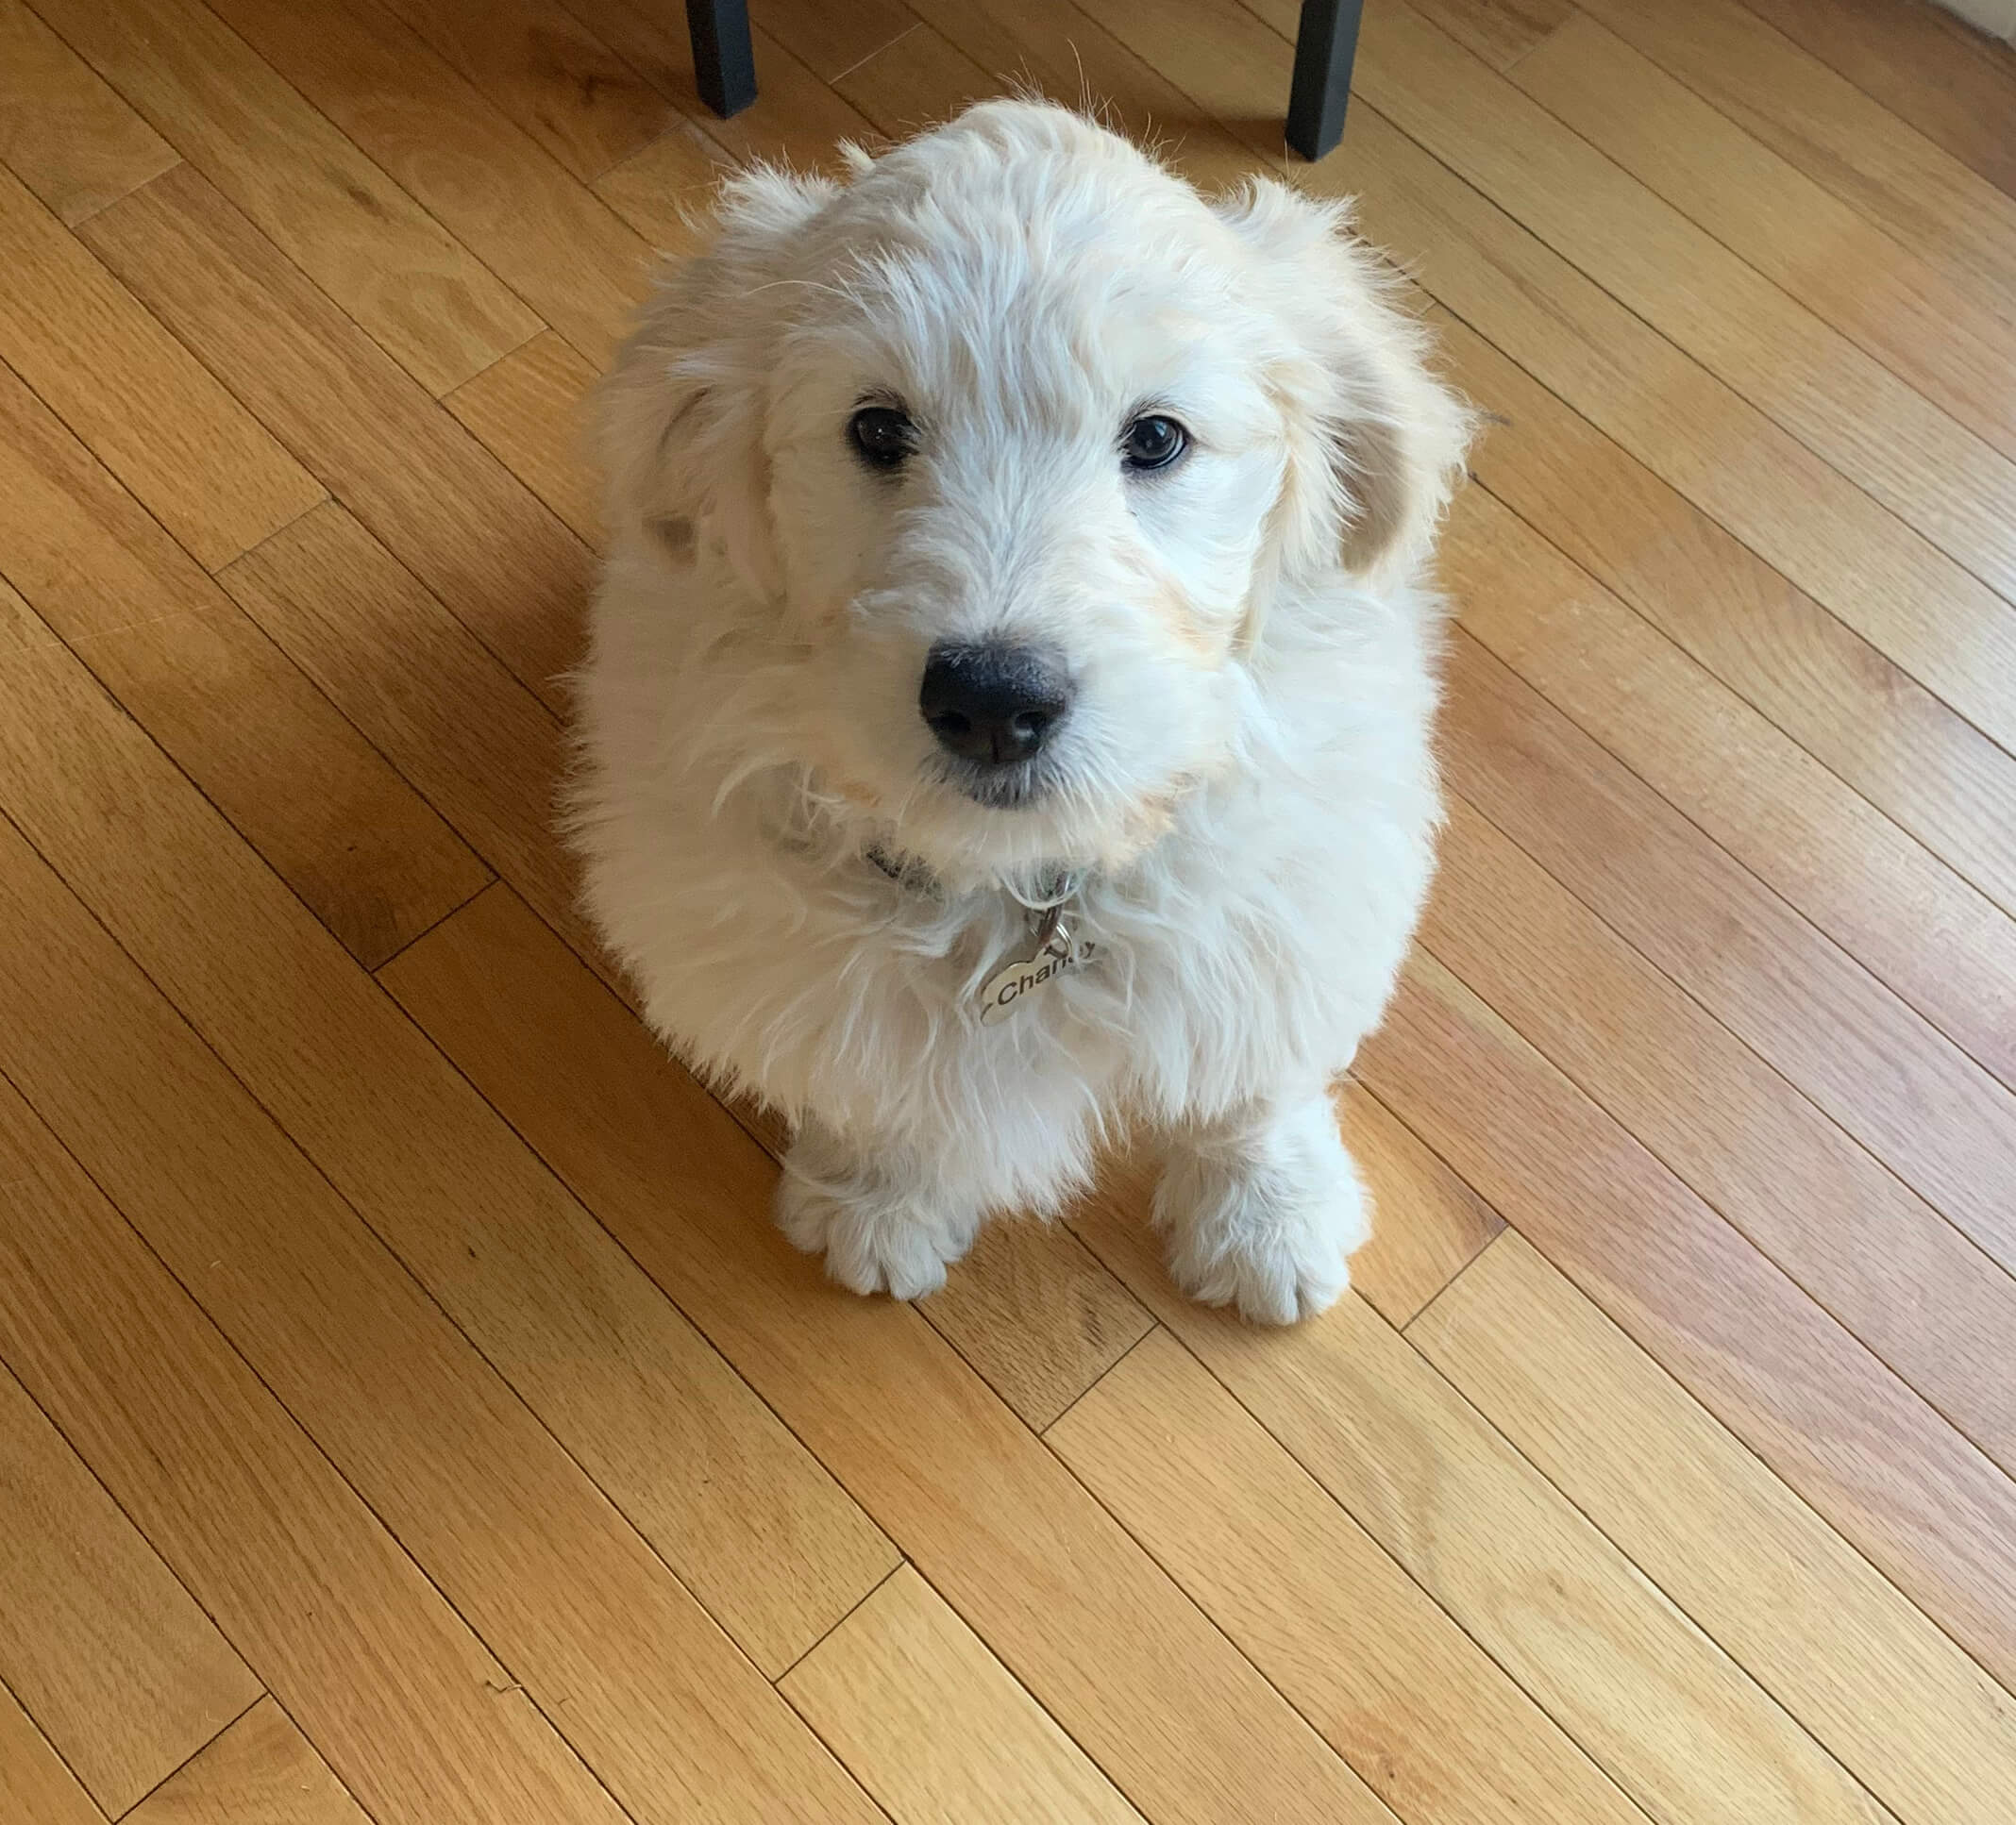 Photograph of cute fluffy white dog who is not dehydrated.